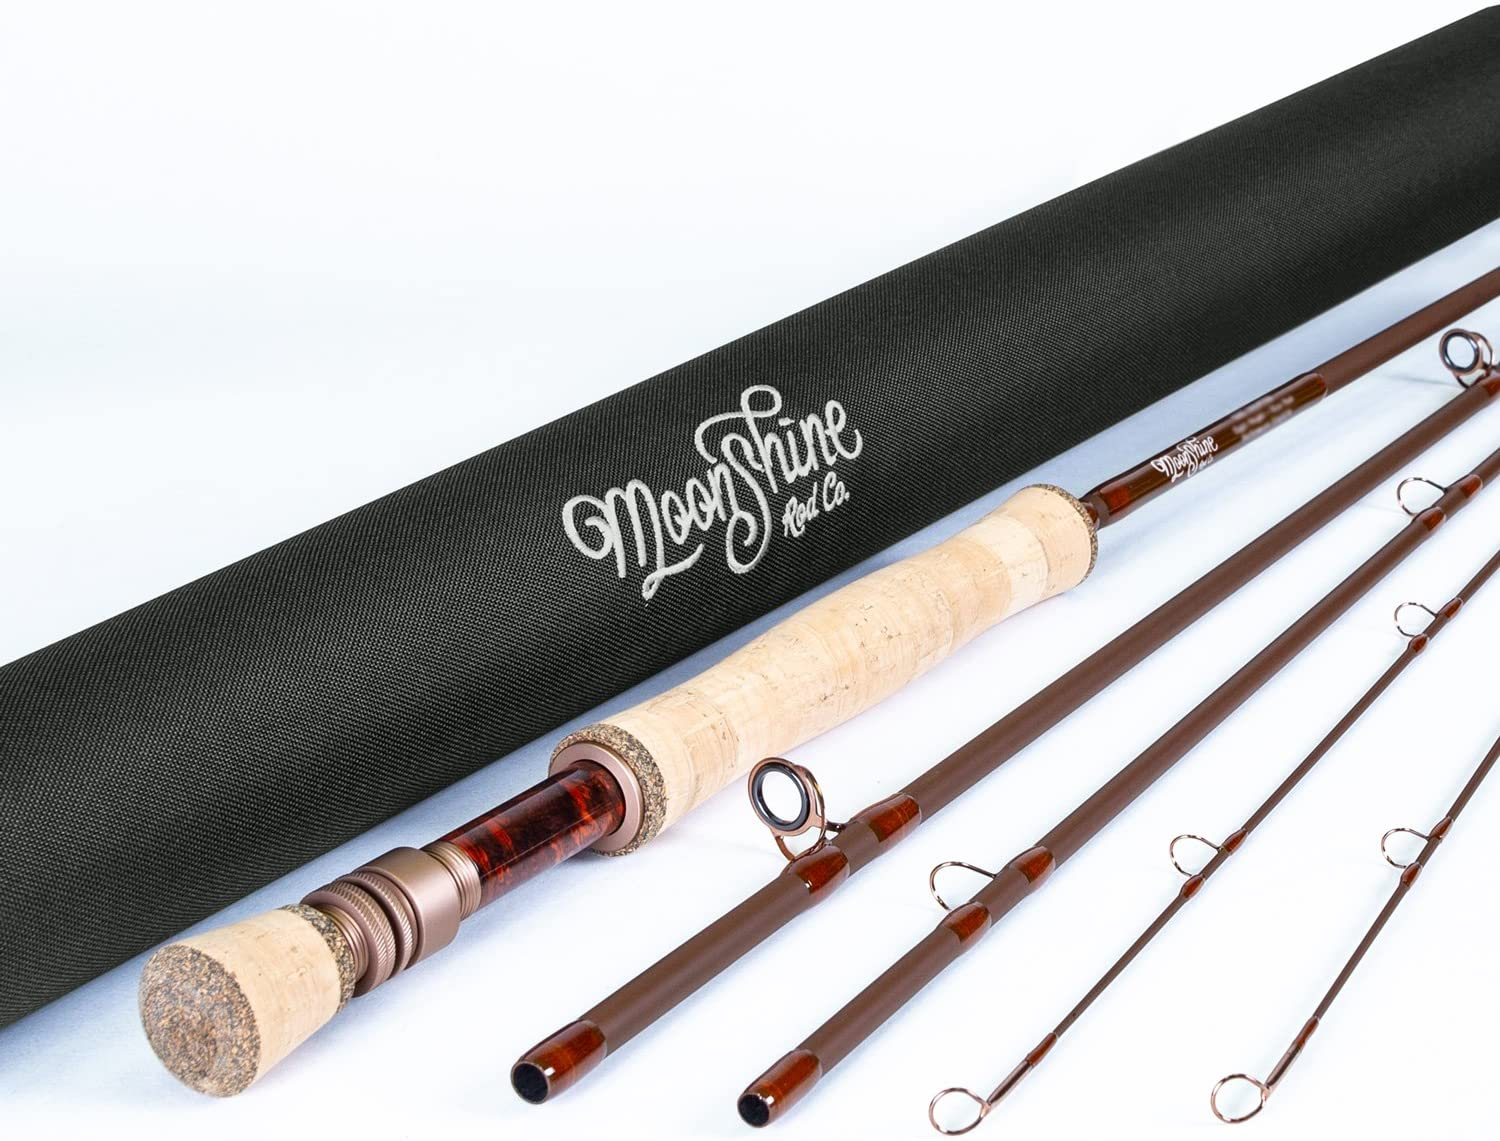 best saltwater fly rods: Moonshine Rod Co. The Drifter Series Fly Fishing Rod